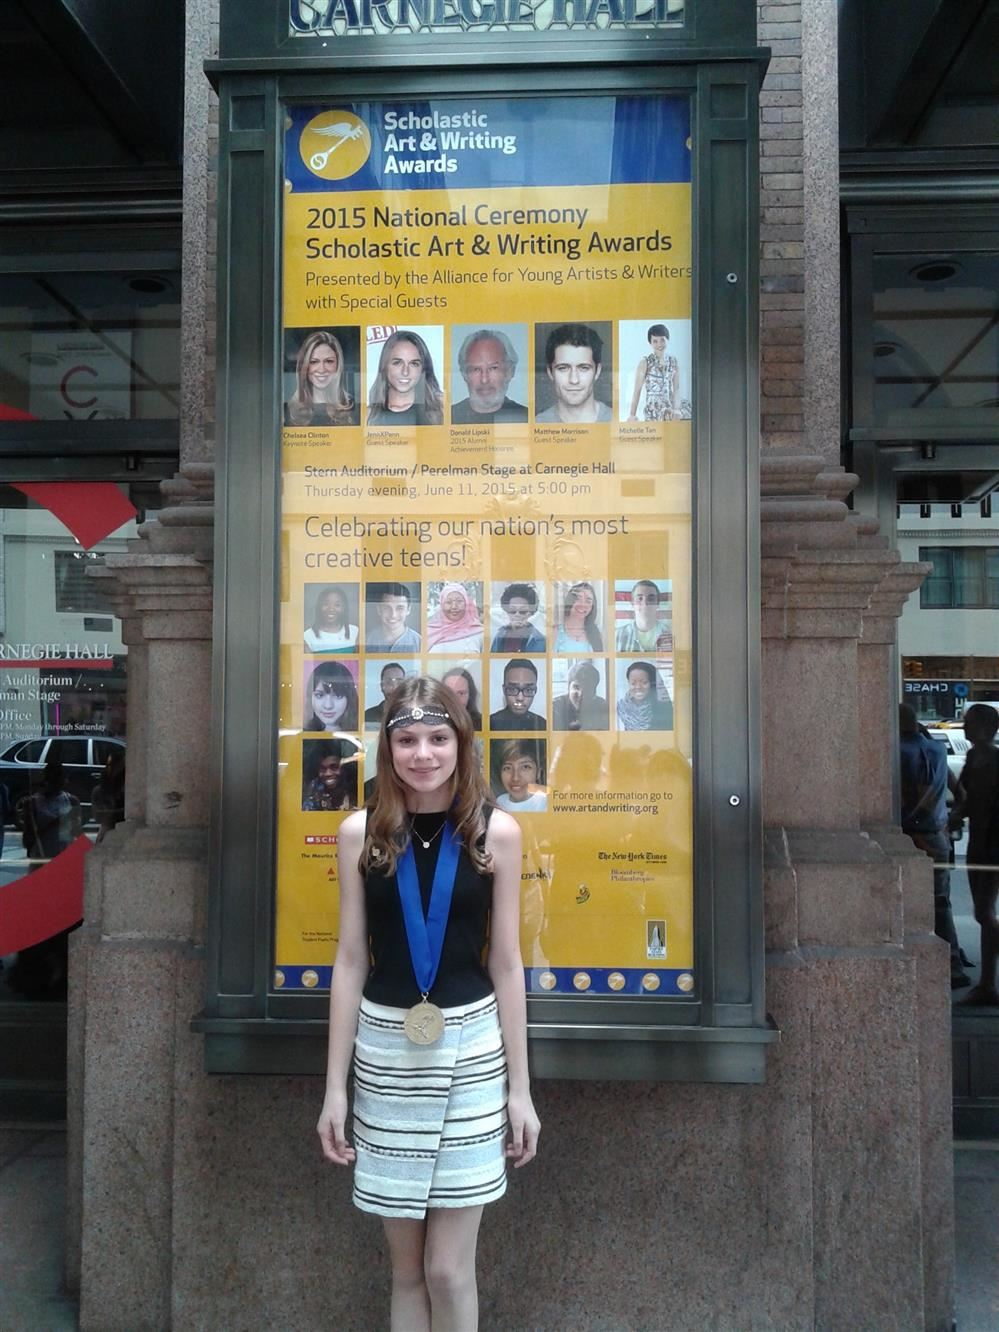 Student standing in front of Carnegie Hall